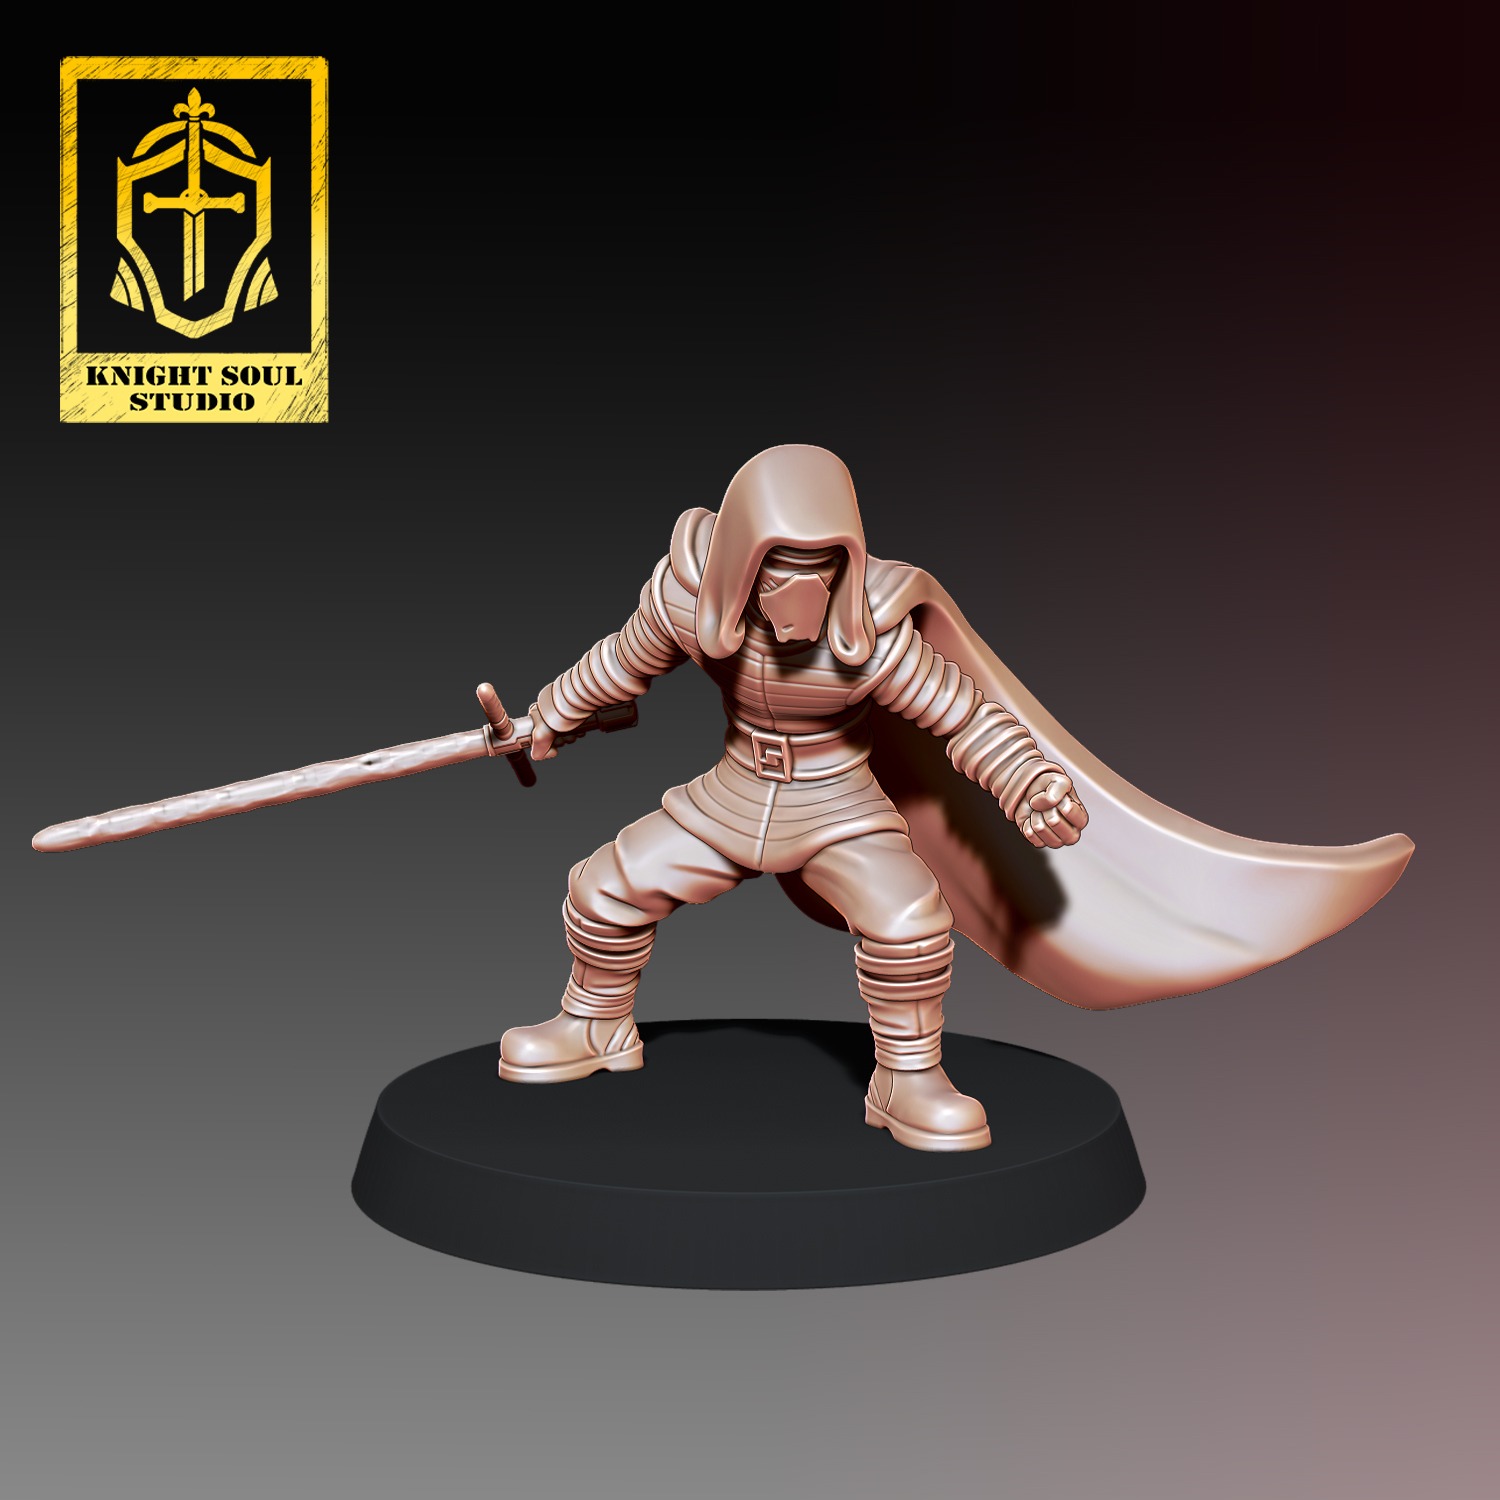 B.jpg Download STL file PACK LAST KNIGHT V FALLEN KNIGHT • 3D printer model, KnightSoul_Studio